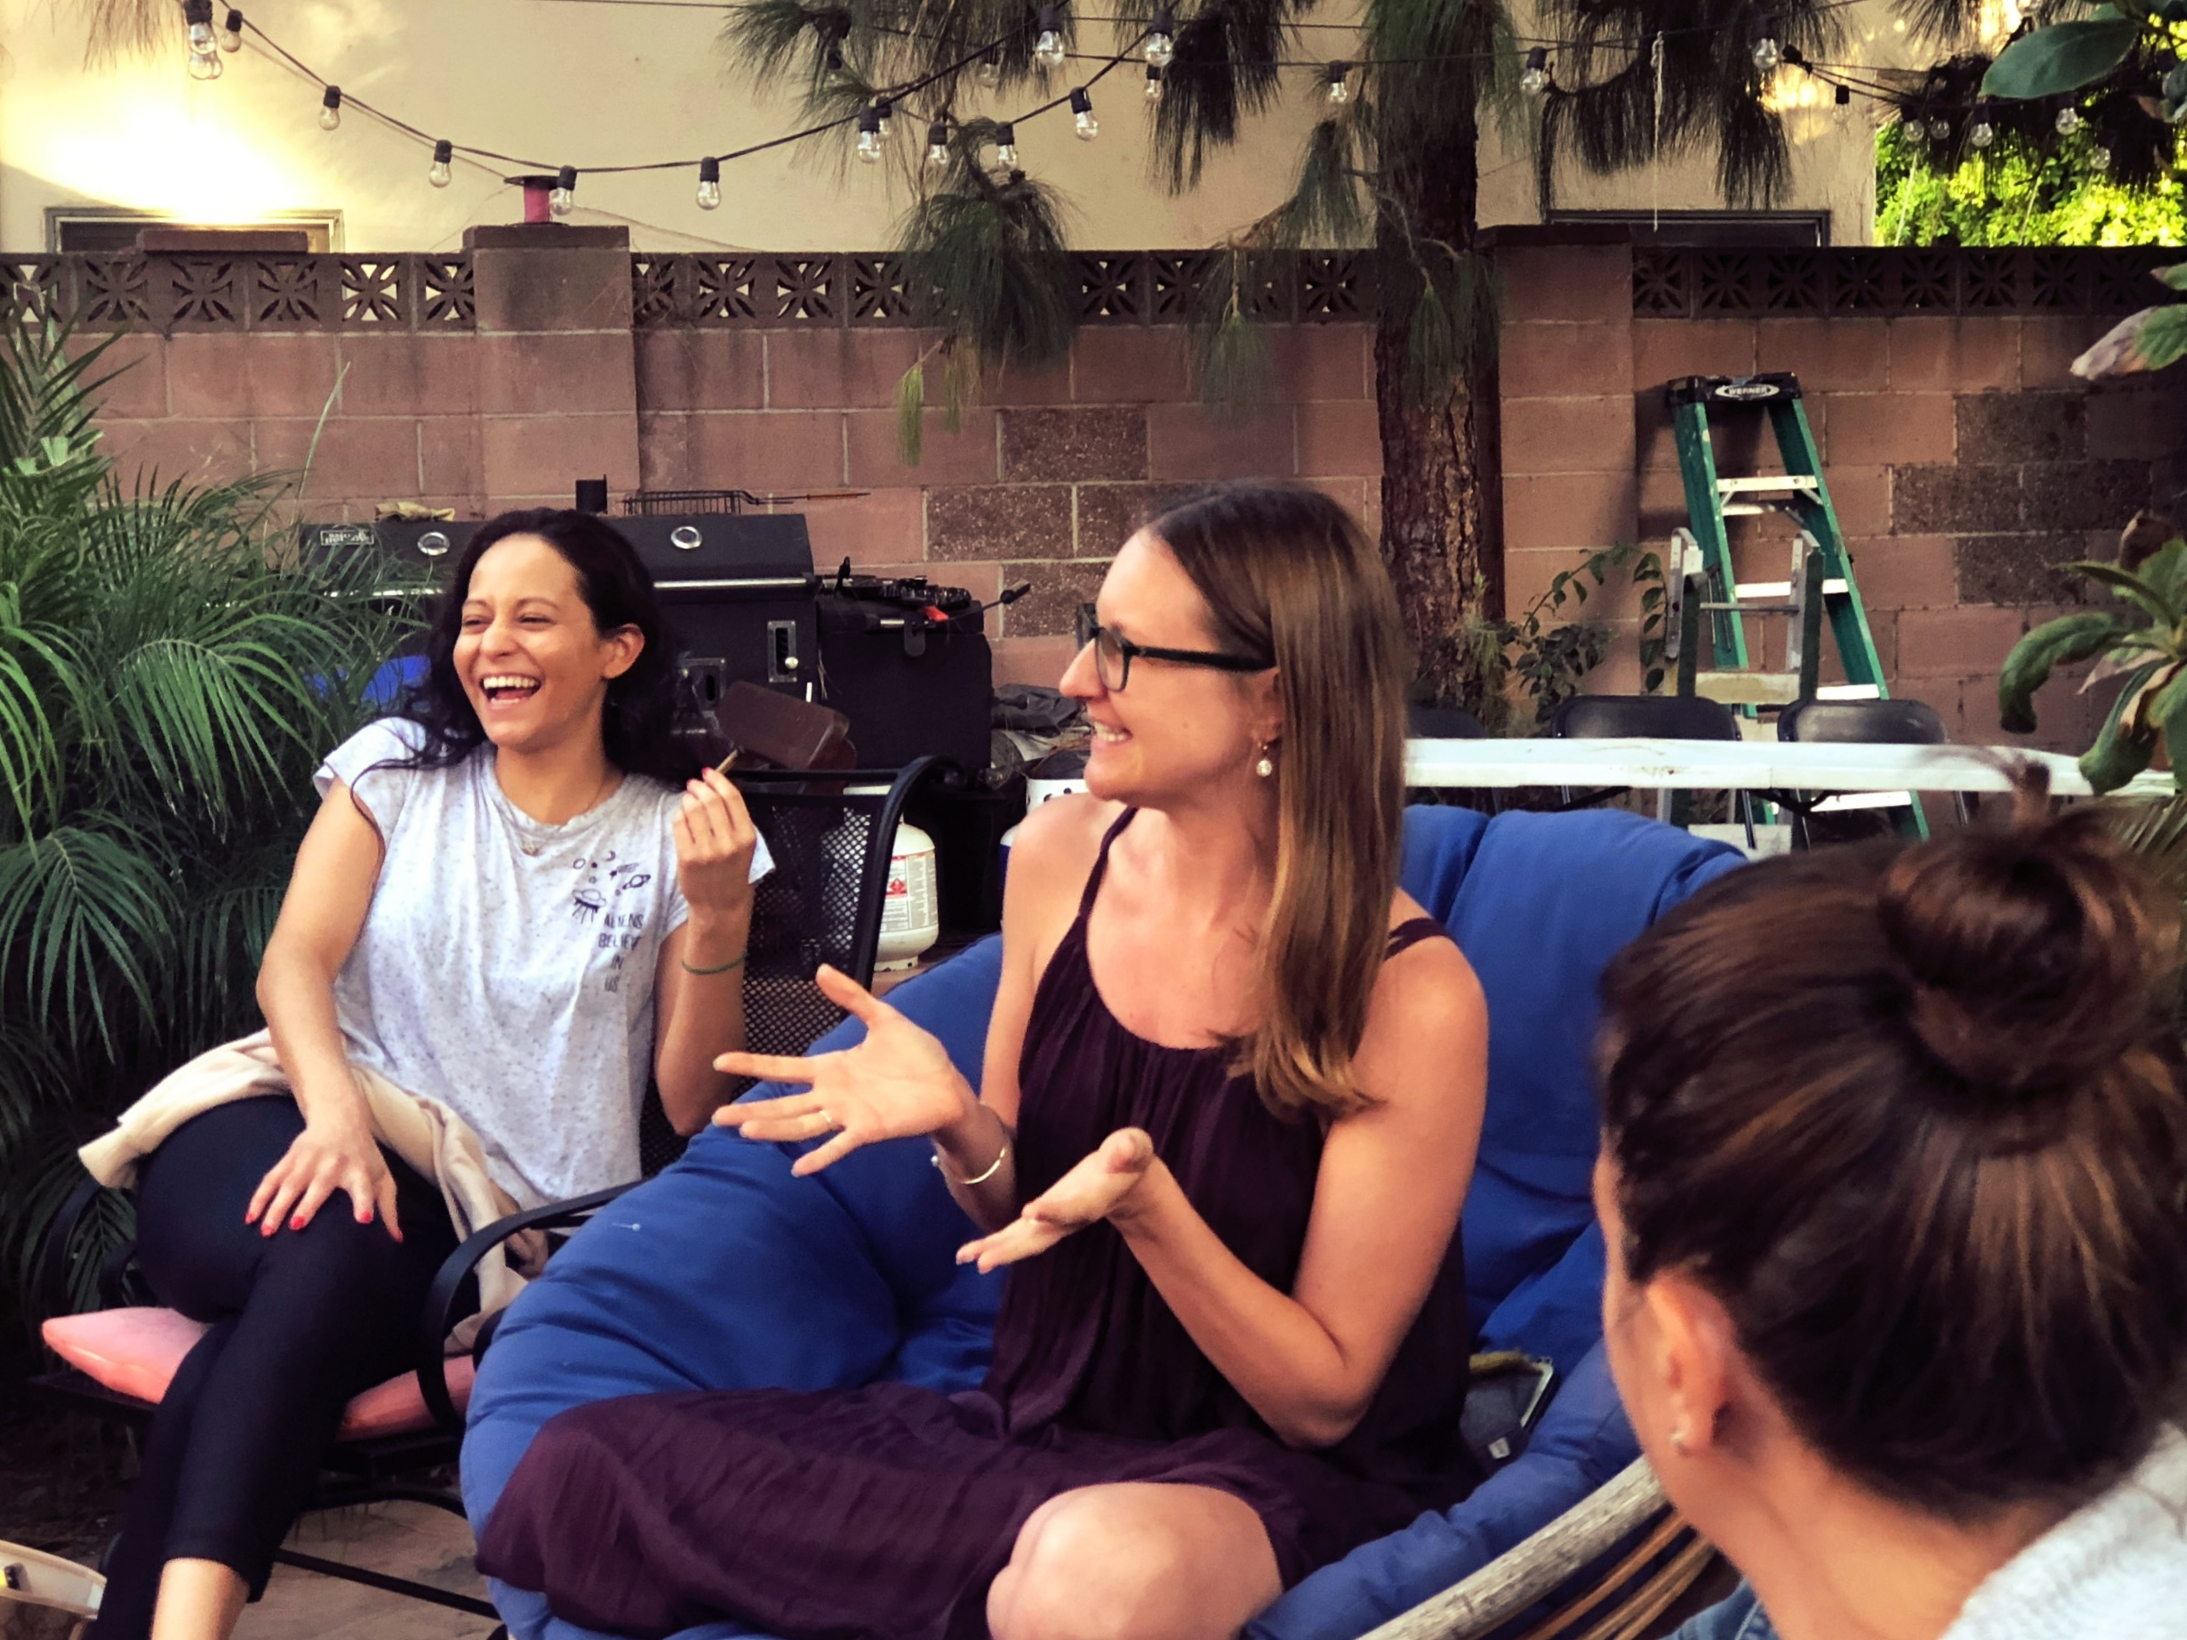 CARLI JO TALKING WITH A GROUP OF WOMEN SUNDAY, AUGUST 26TH 2018  IMAGE CREDIT:  CANNABIS FOR BREAKFAST